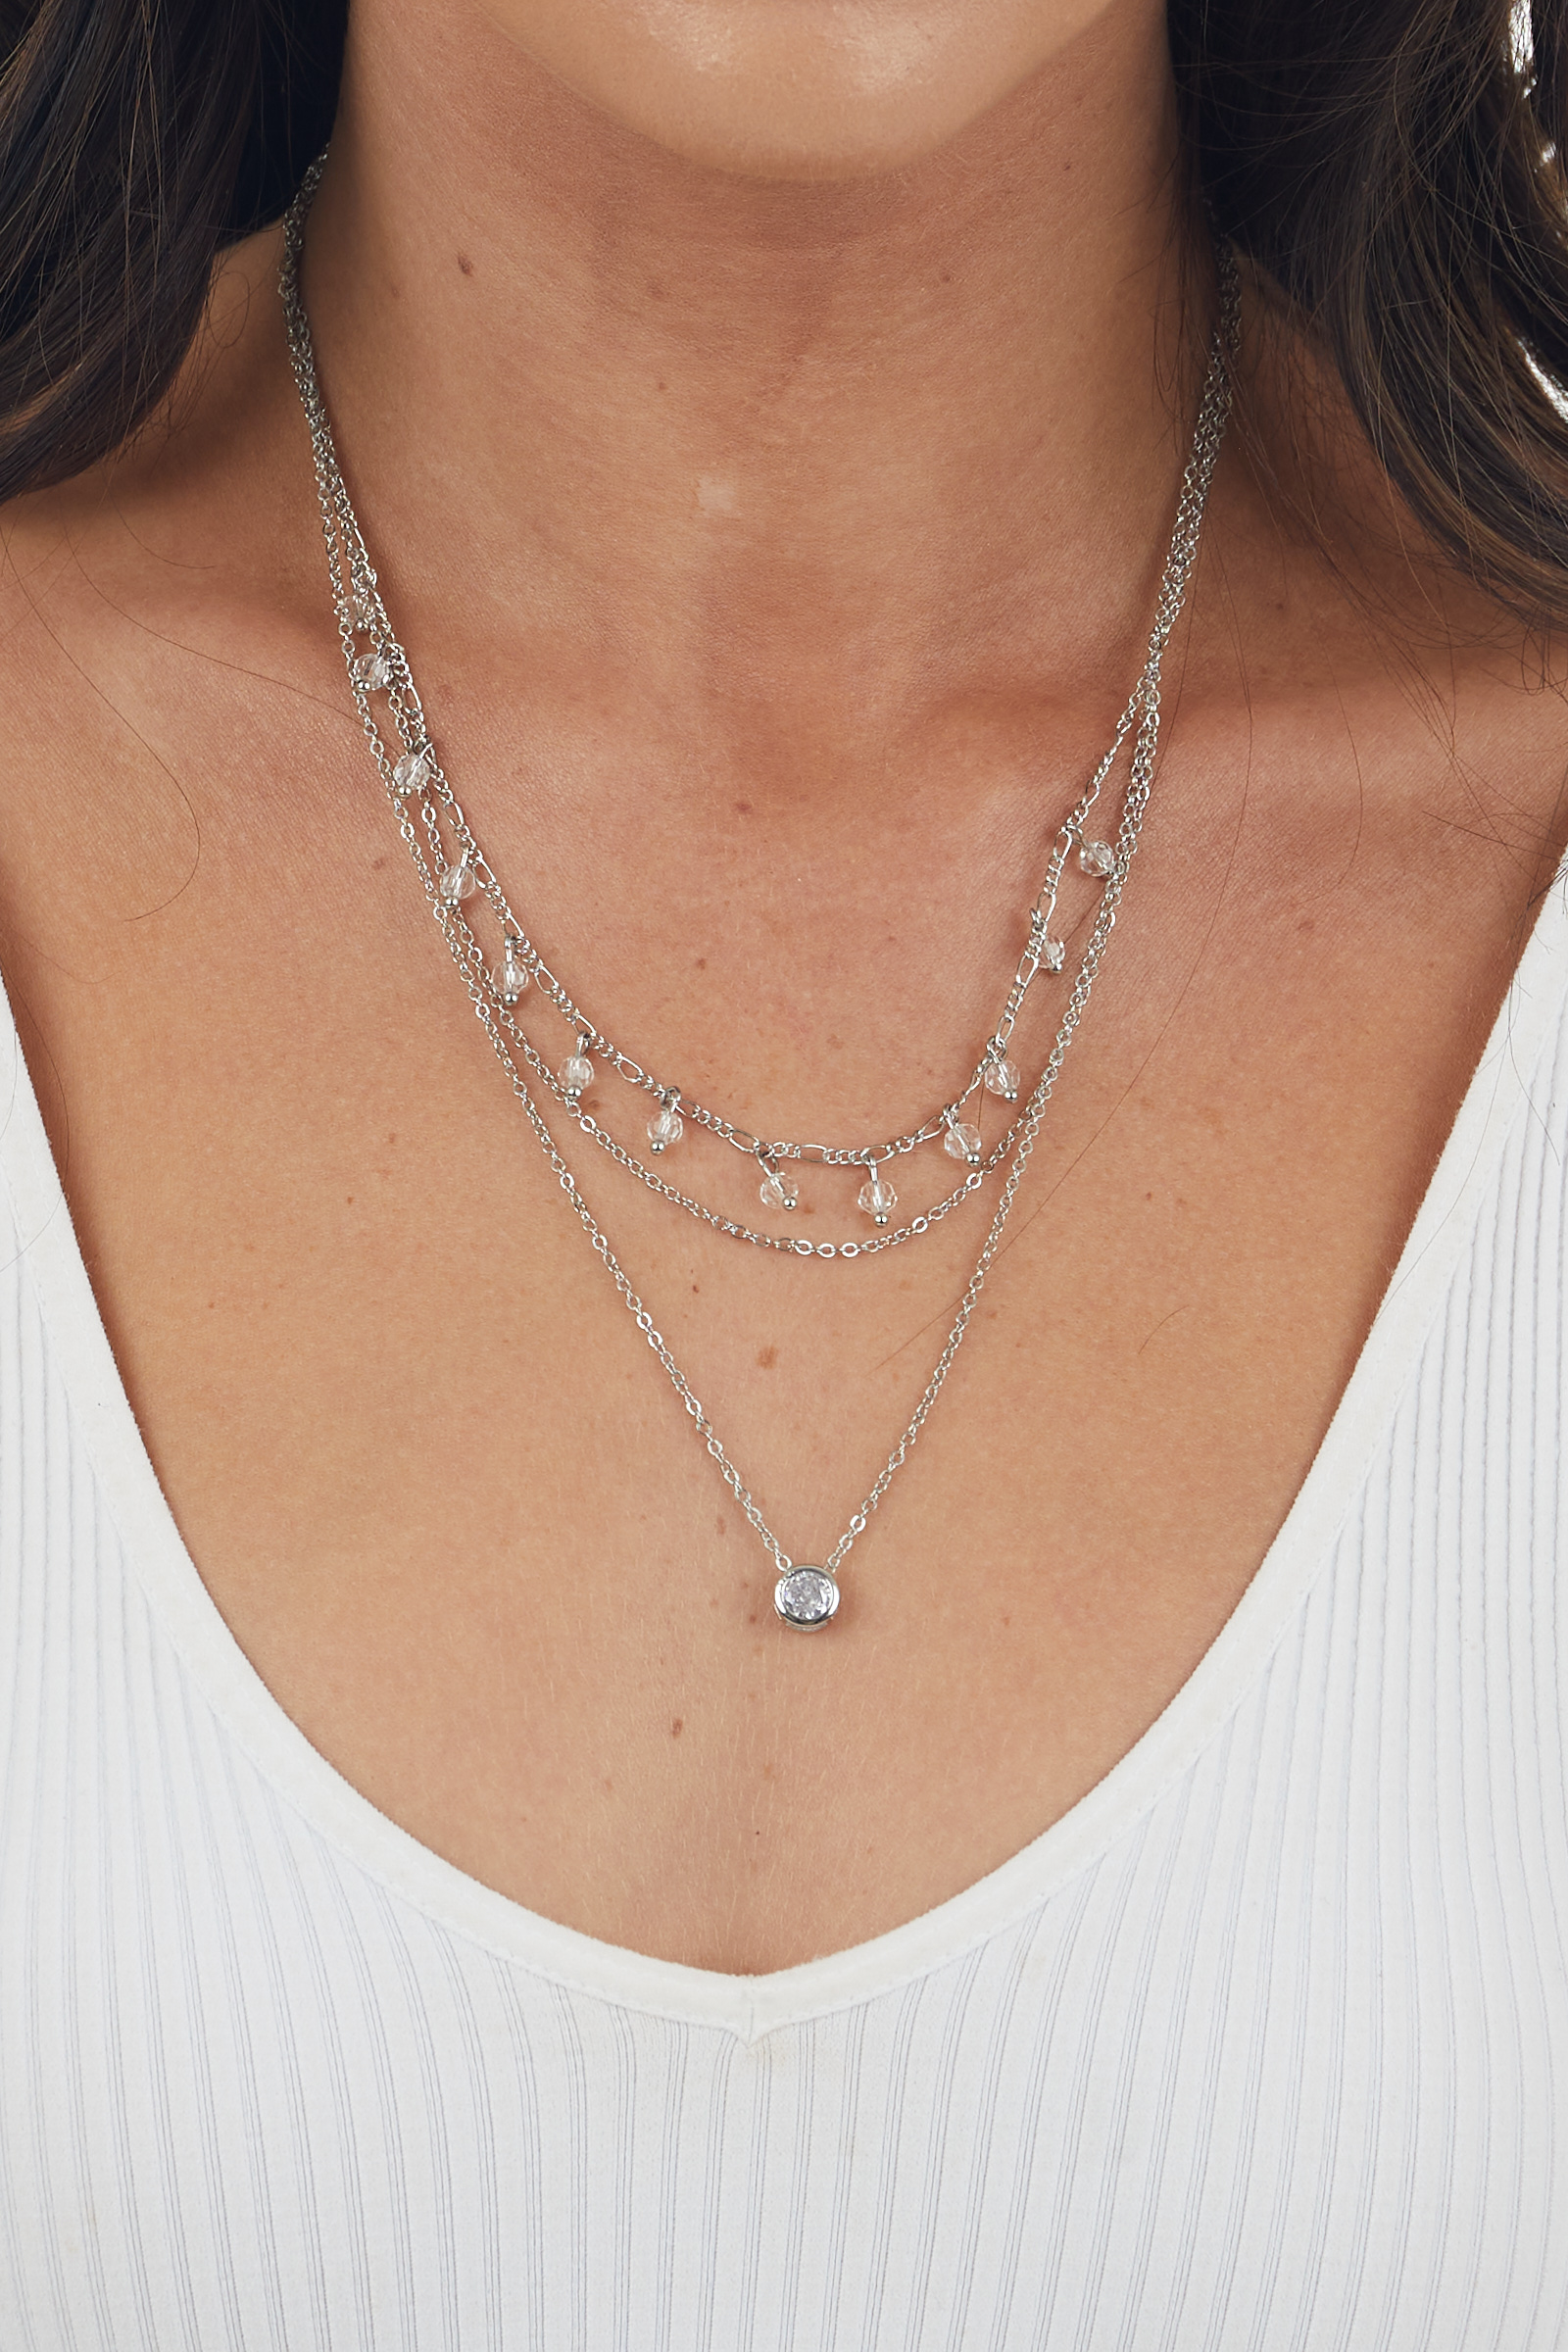 Silver Ball Chain Necklace with Rhinestone Gem